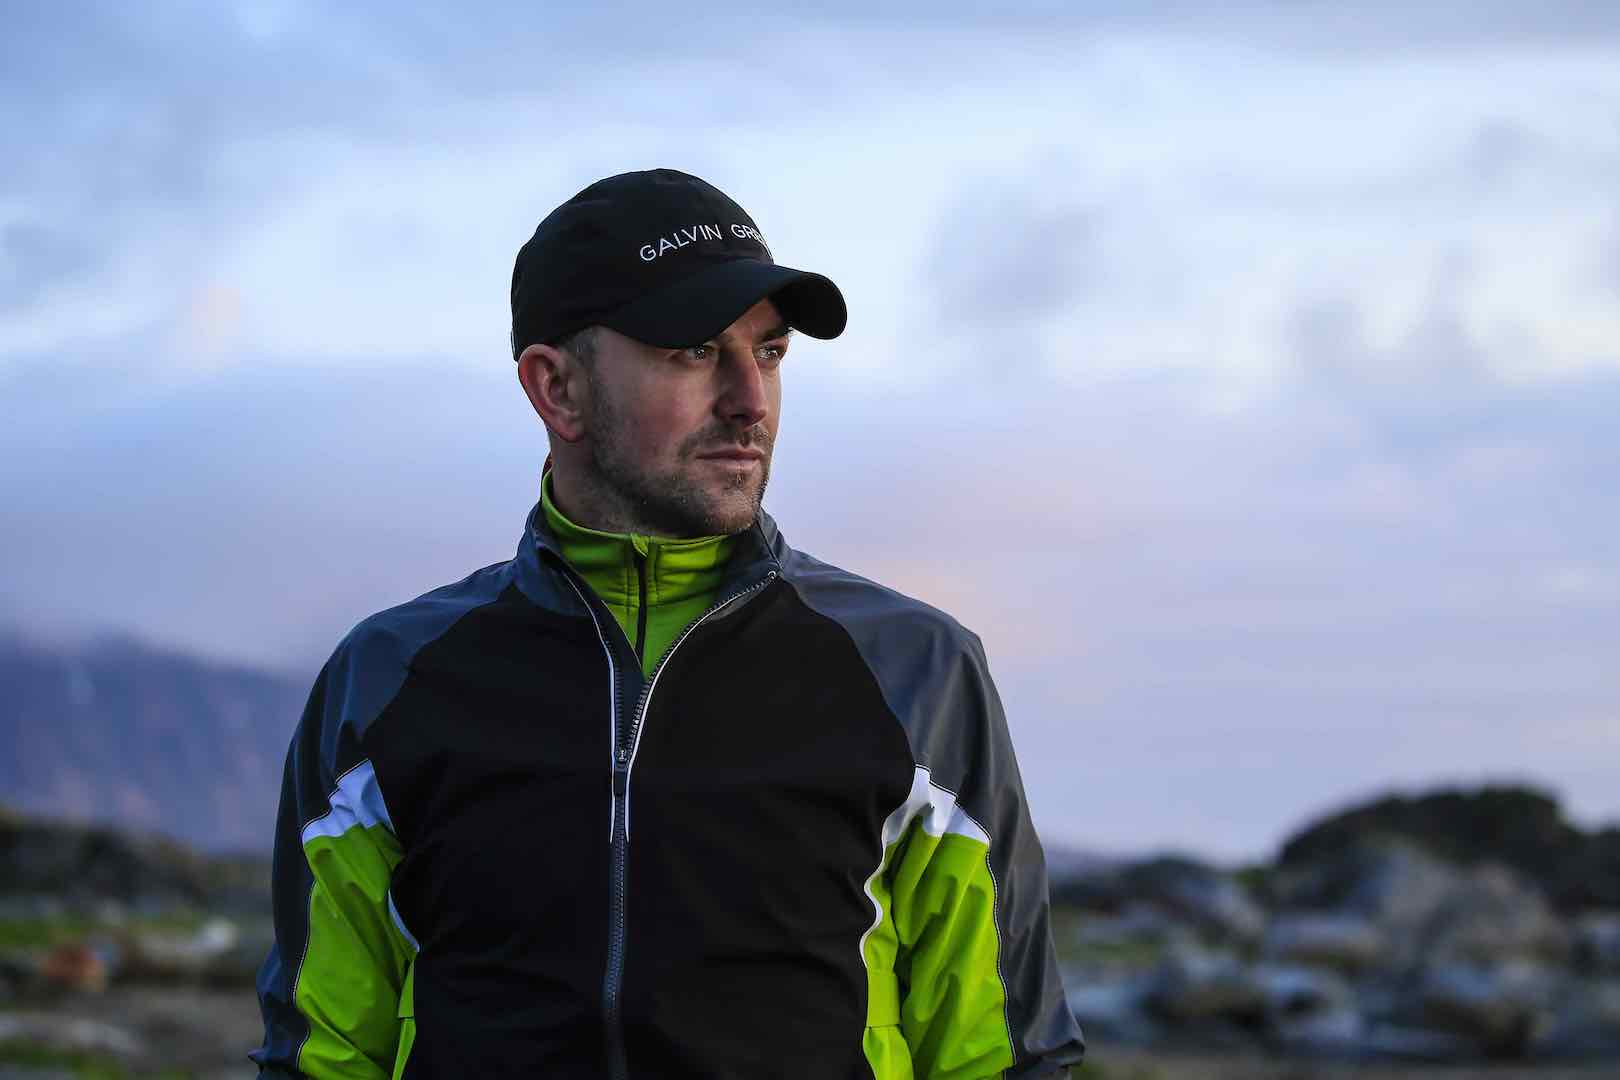 Galvin Green's 2017 collection